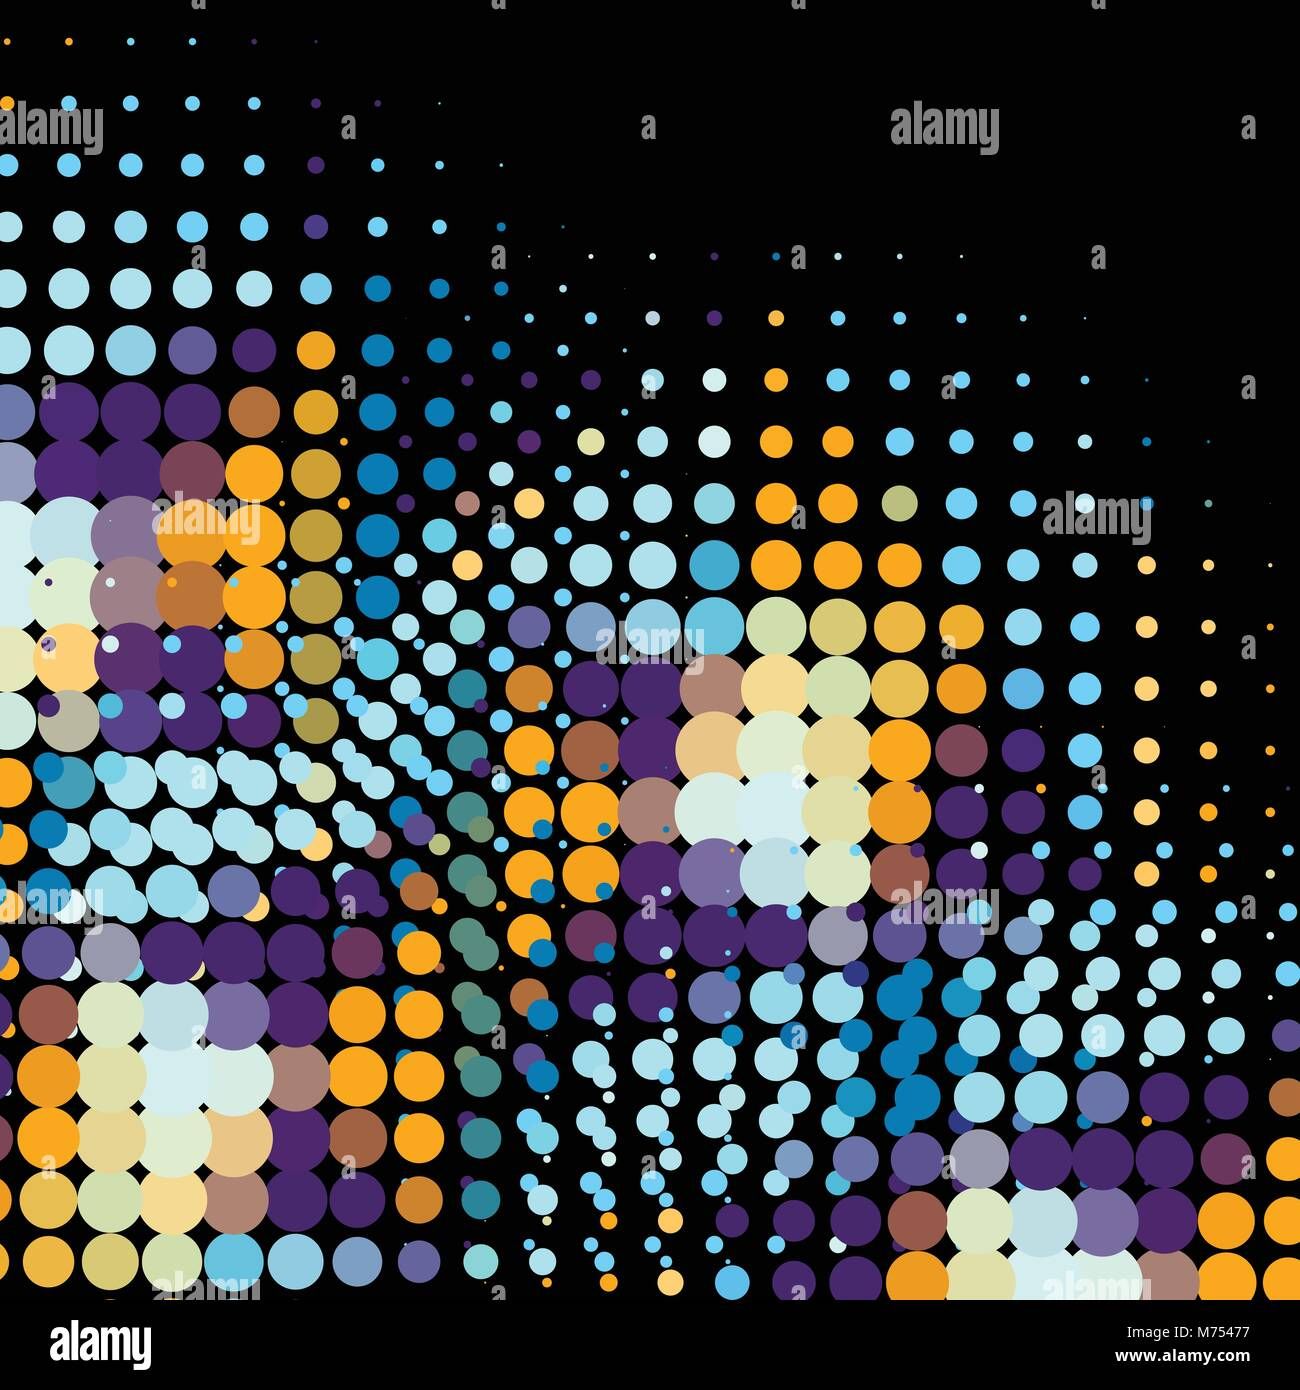 Disco background with halftone dots in retro style - Stock Image